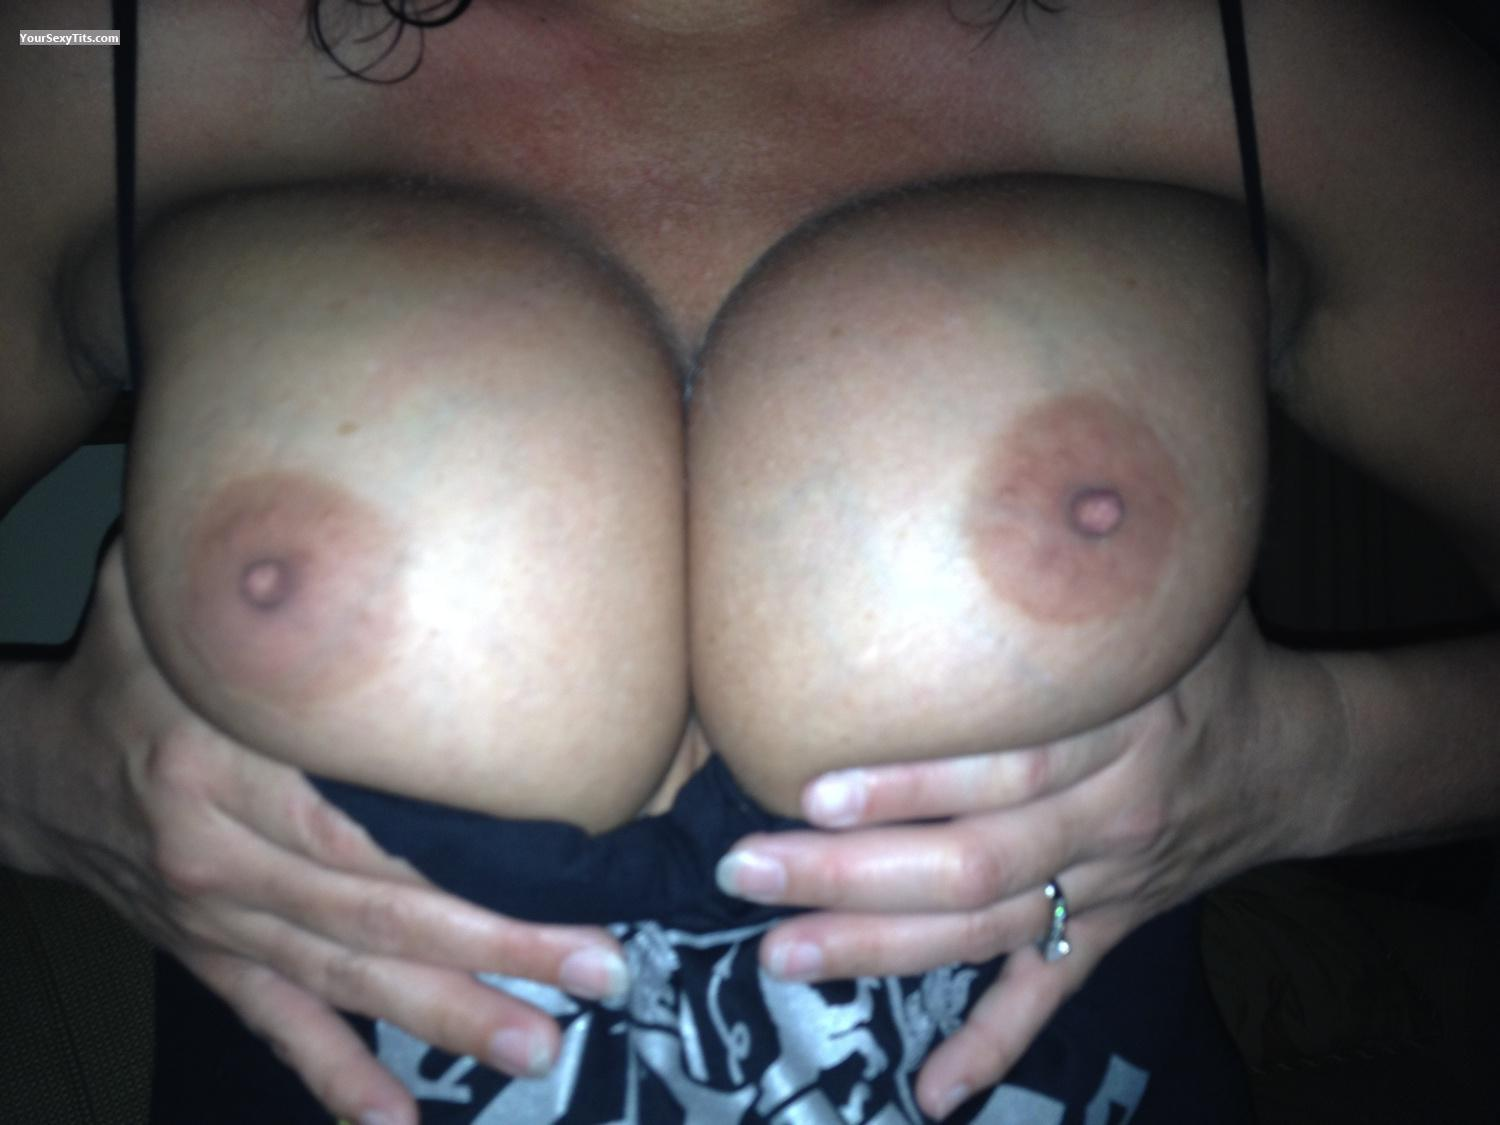 Tit Flash: Big Tits By IPhone - Boob Luvr from United States